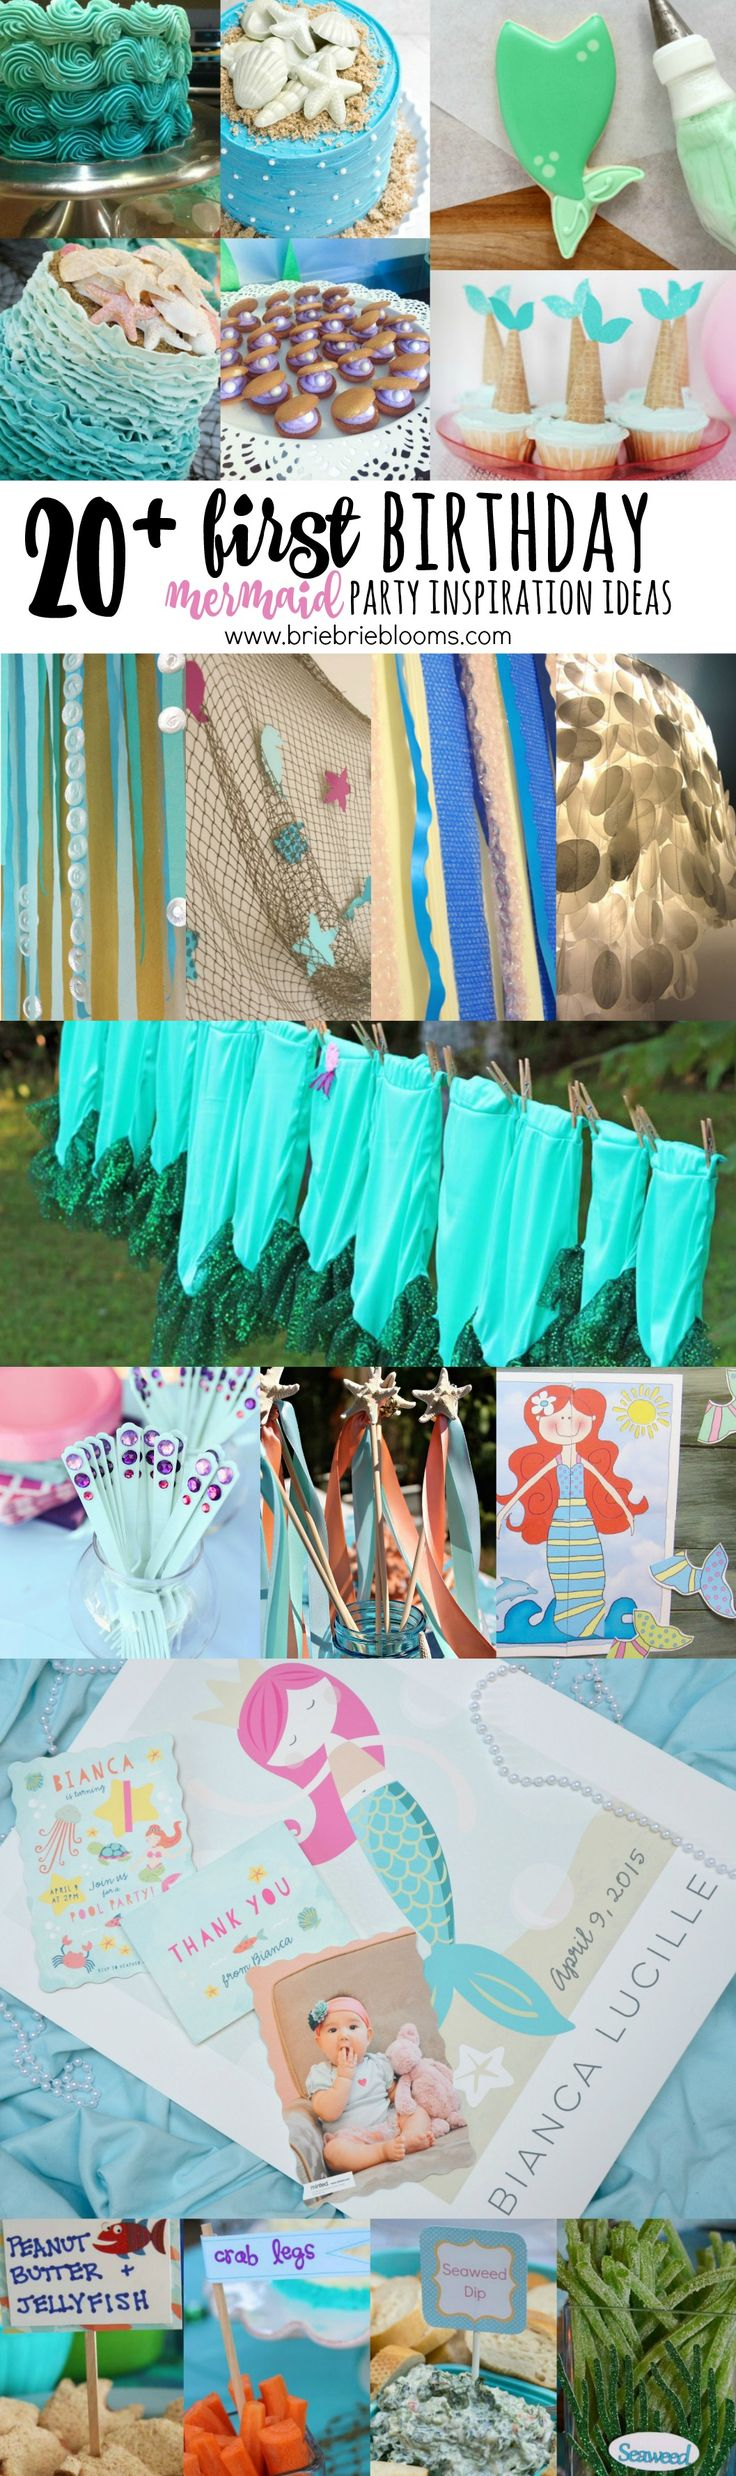 Plan the perfect party with 20+ First Birthday Mermaid Party Inspiration Ideas.